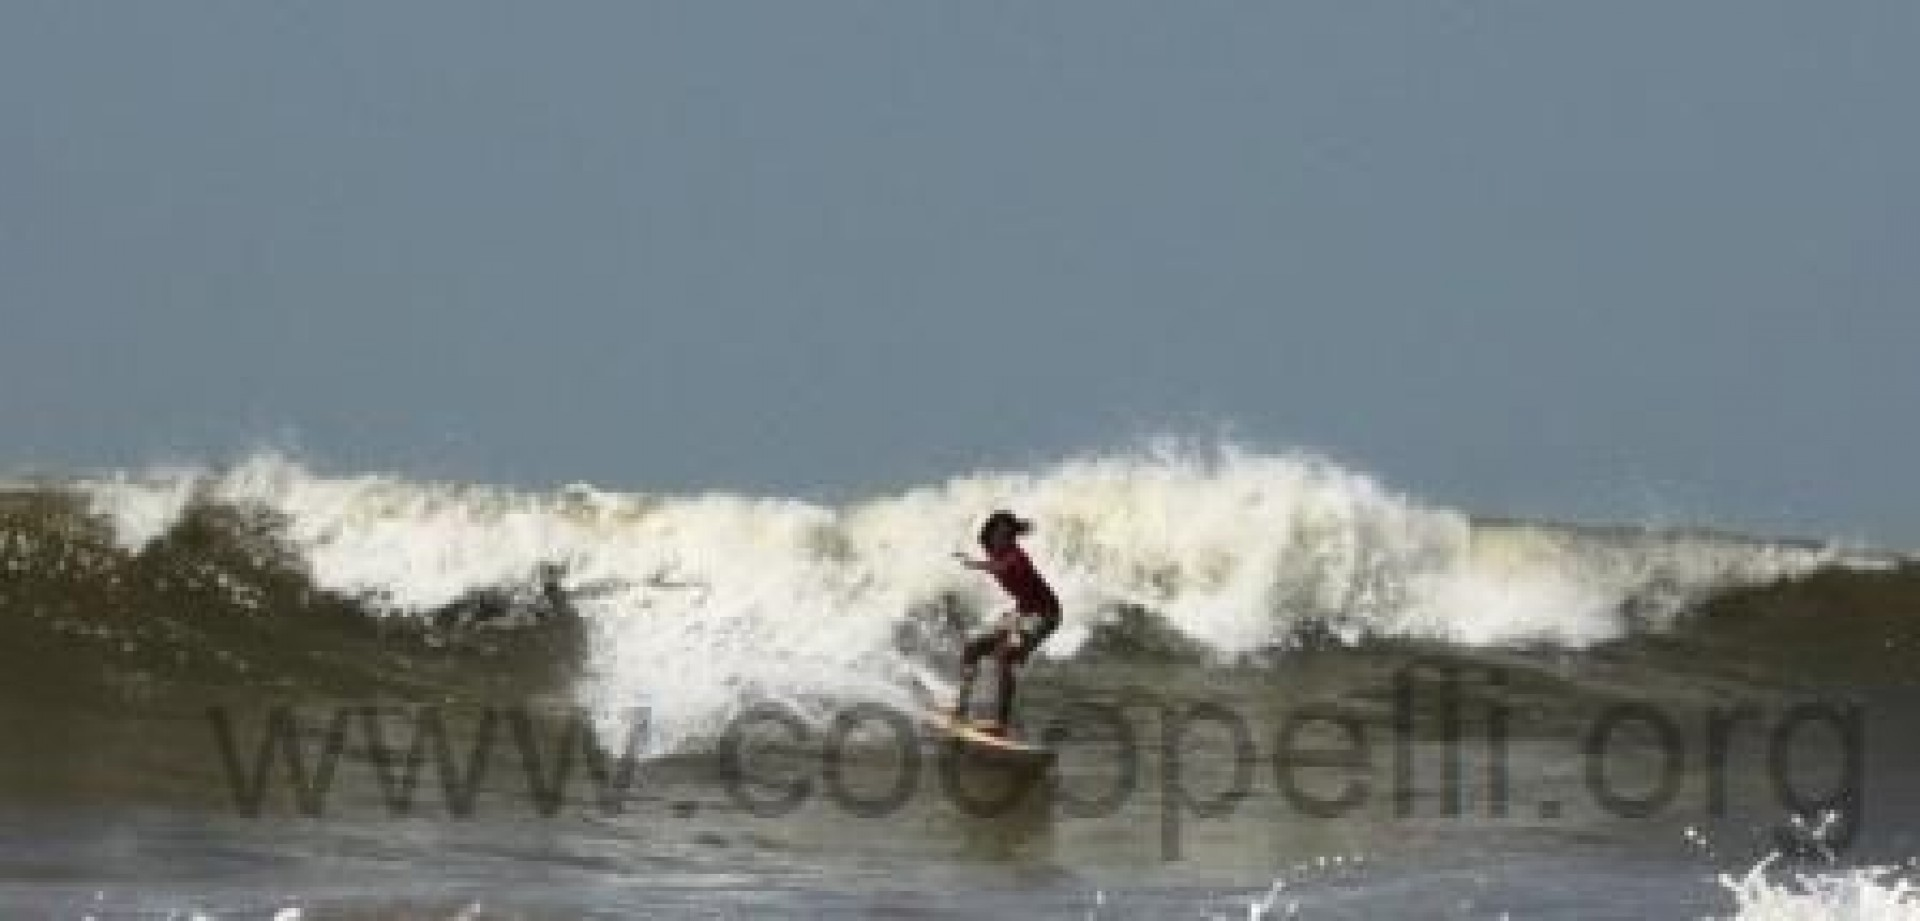 sandeep samuel surf's photo of Kumta